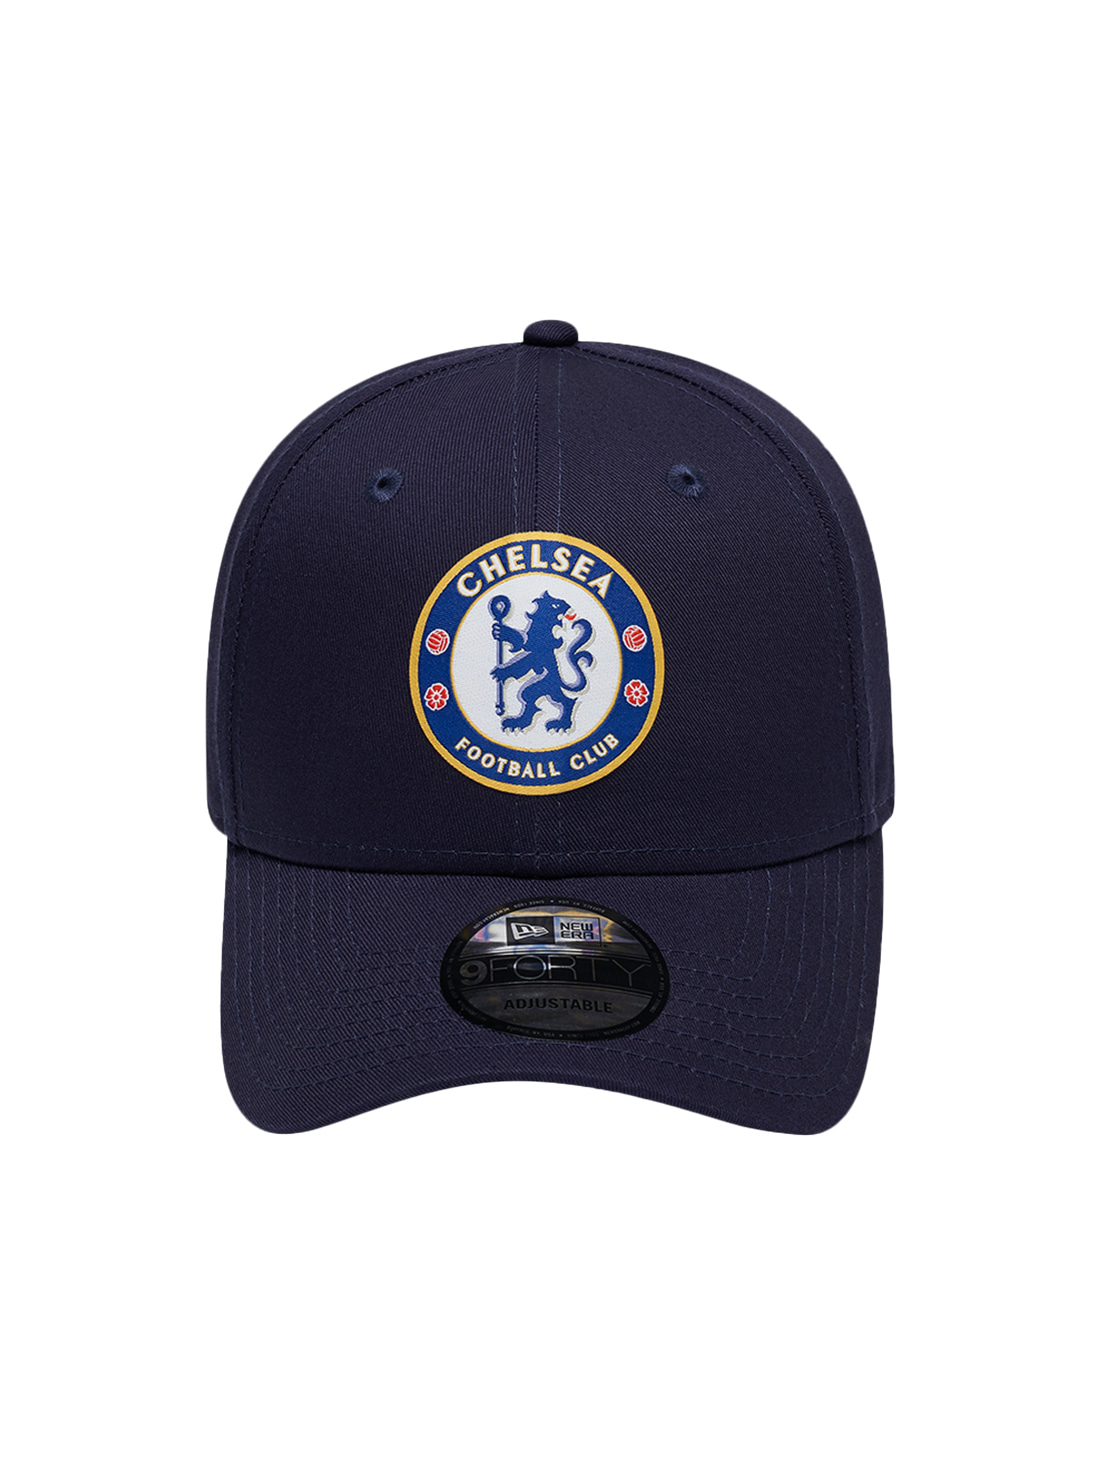 GOALSTUDIO (Sold Out) CHELSEA 940 BALL CAP - NAVY